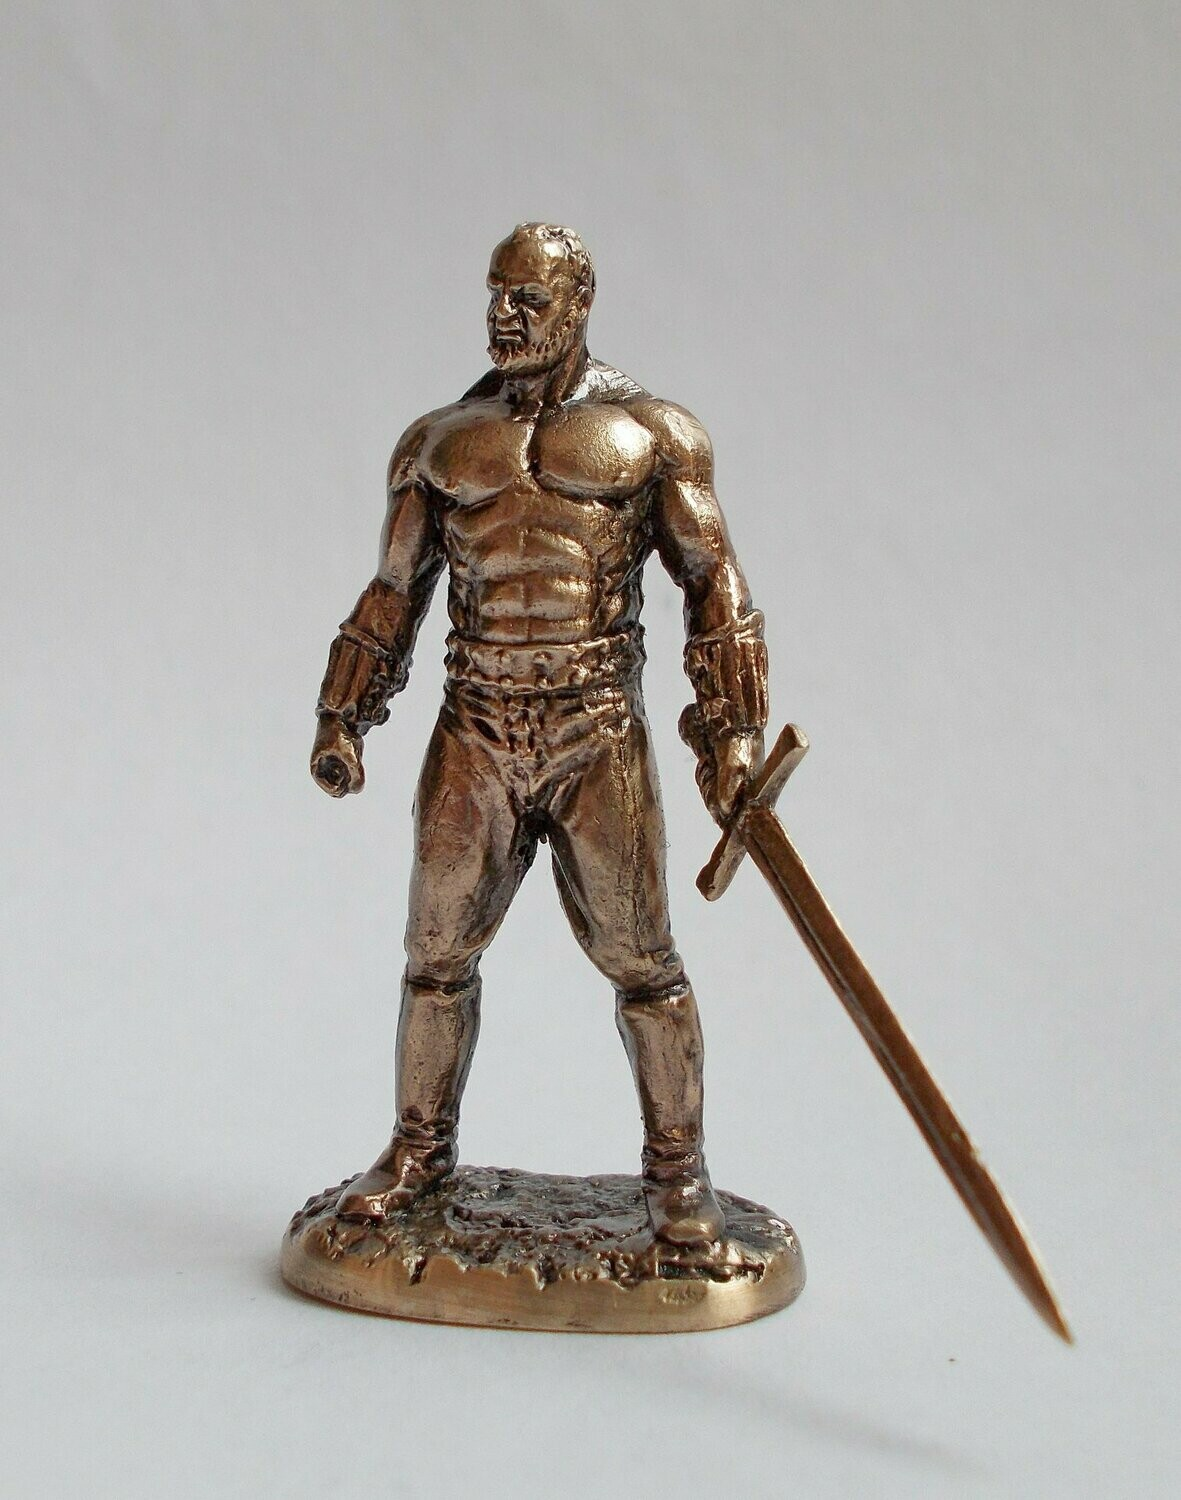 40mm Gregor Clegane, The Mountain, Game Of Thrones brass miniature